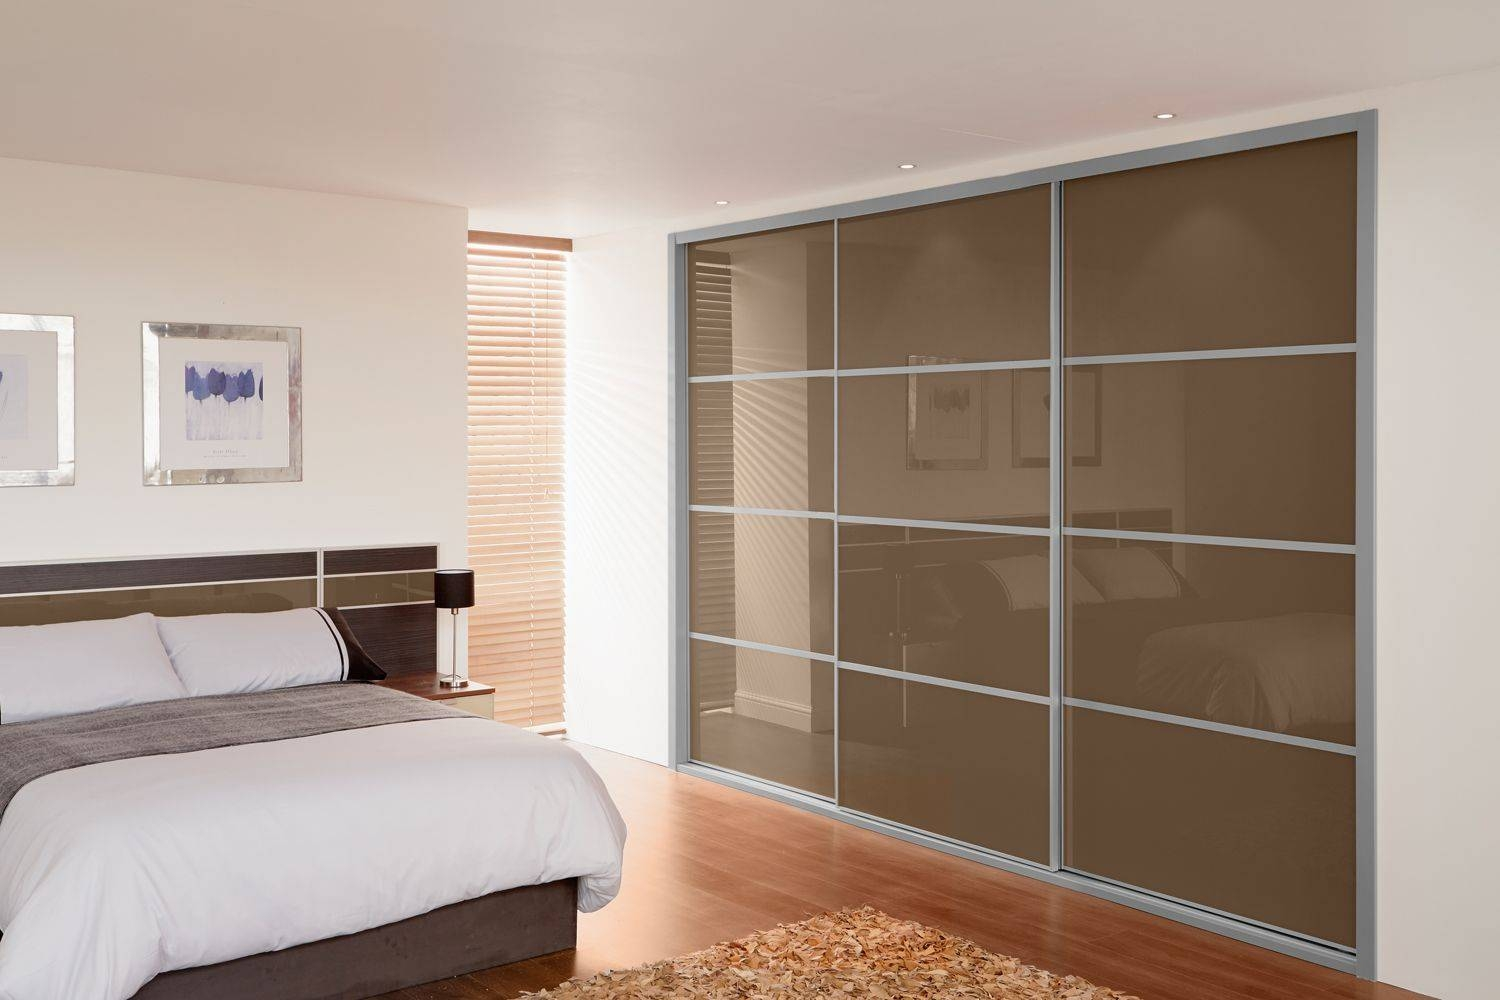 Bedroom Furniture : Furniture Wardrobe Wardrobes With Sliding regarding Wall Wardrobes (Image 4 of 30)